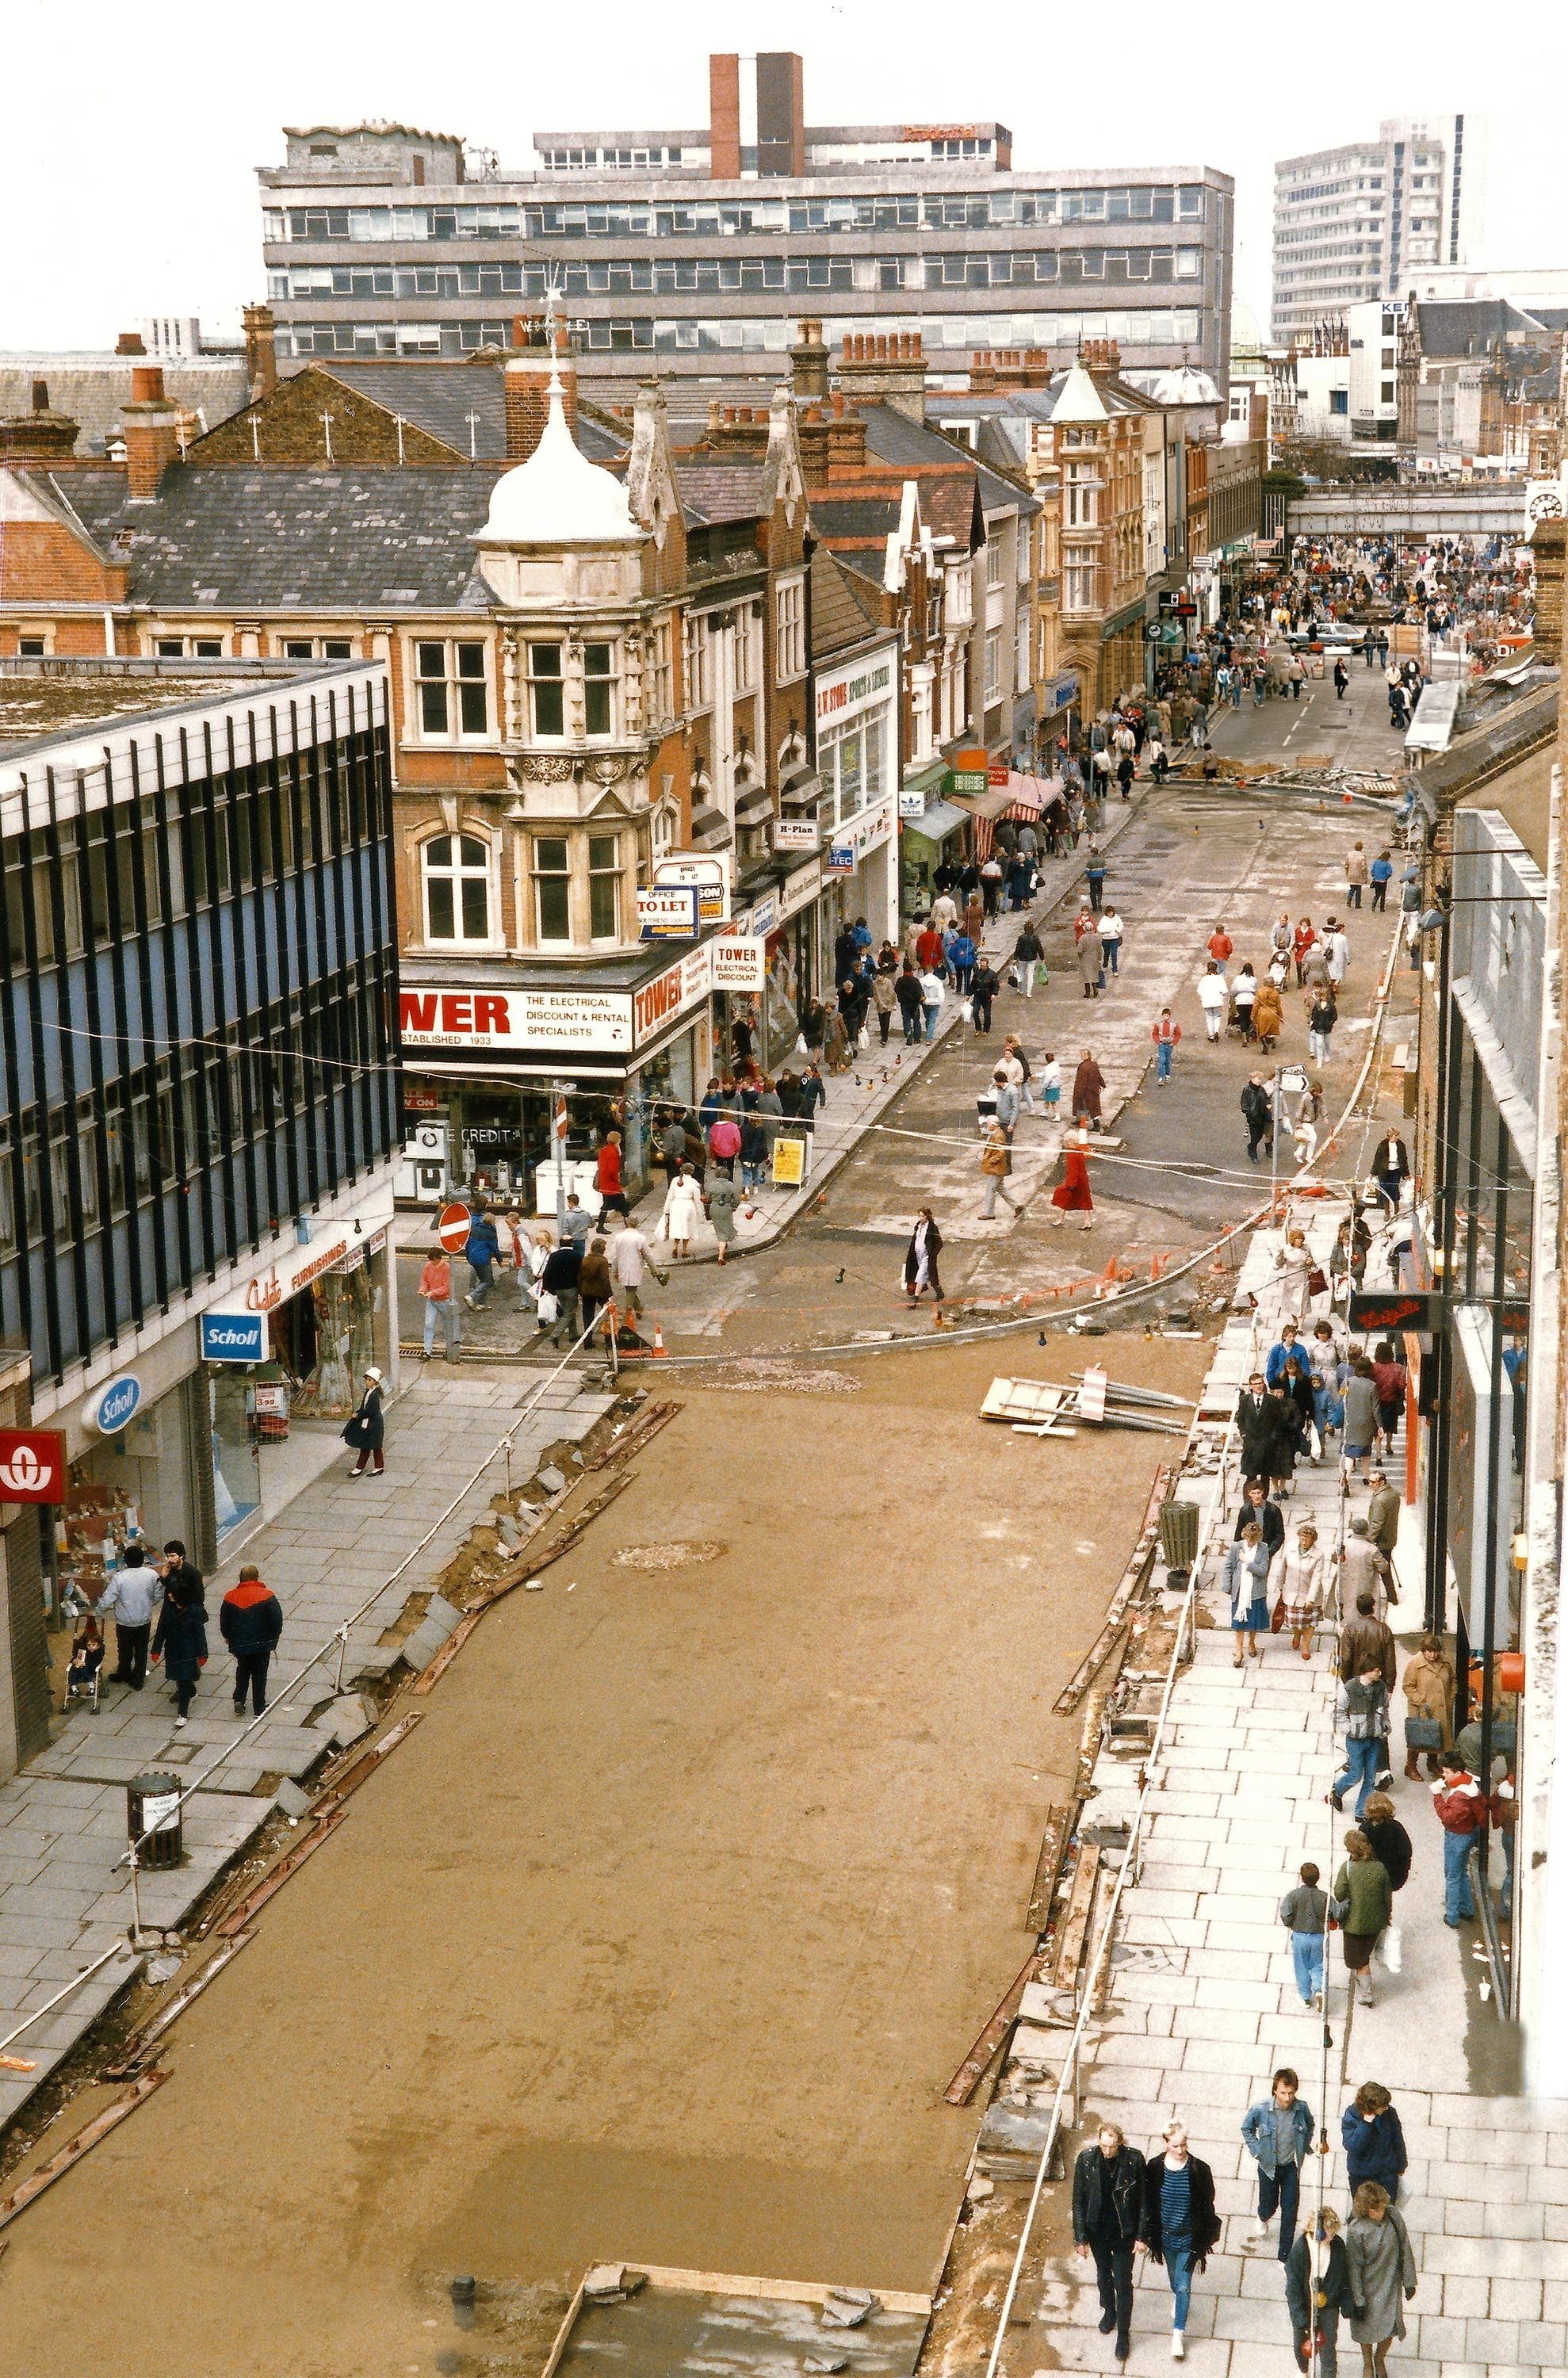 For Throwback Thursday We Re Delighted To Reveal These Incredible Images Of The Royals And Southend High Street From Th Southend Southend On Sea Local Studies